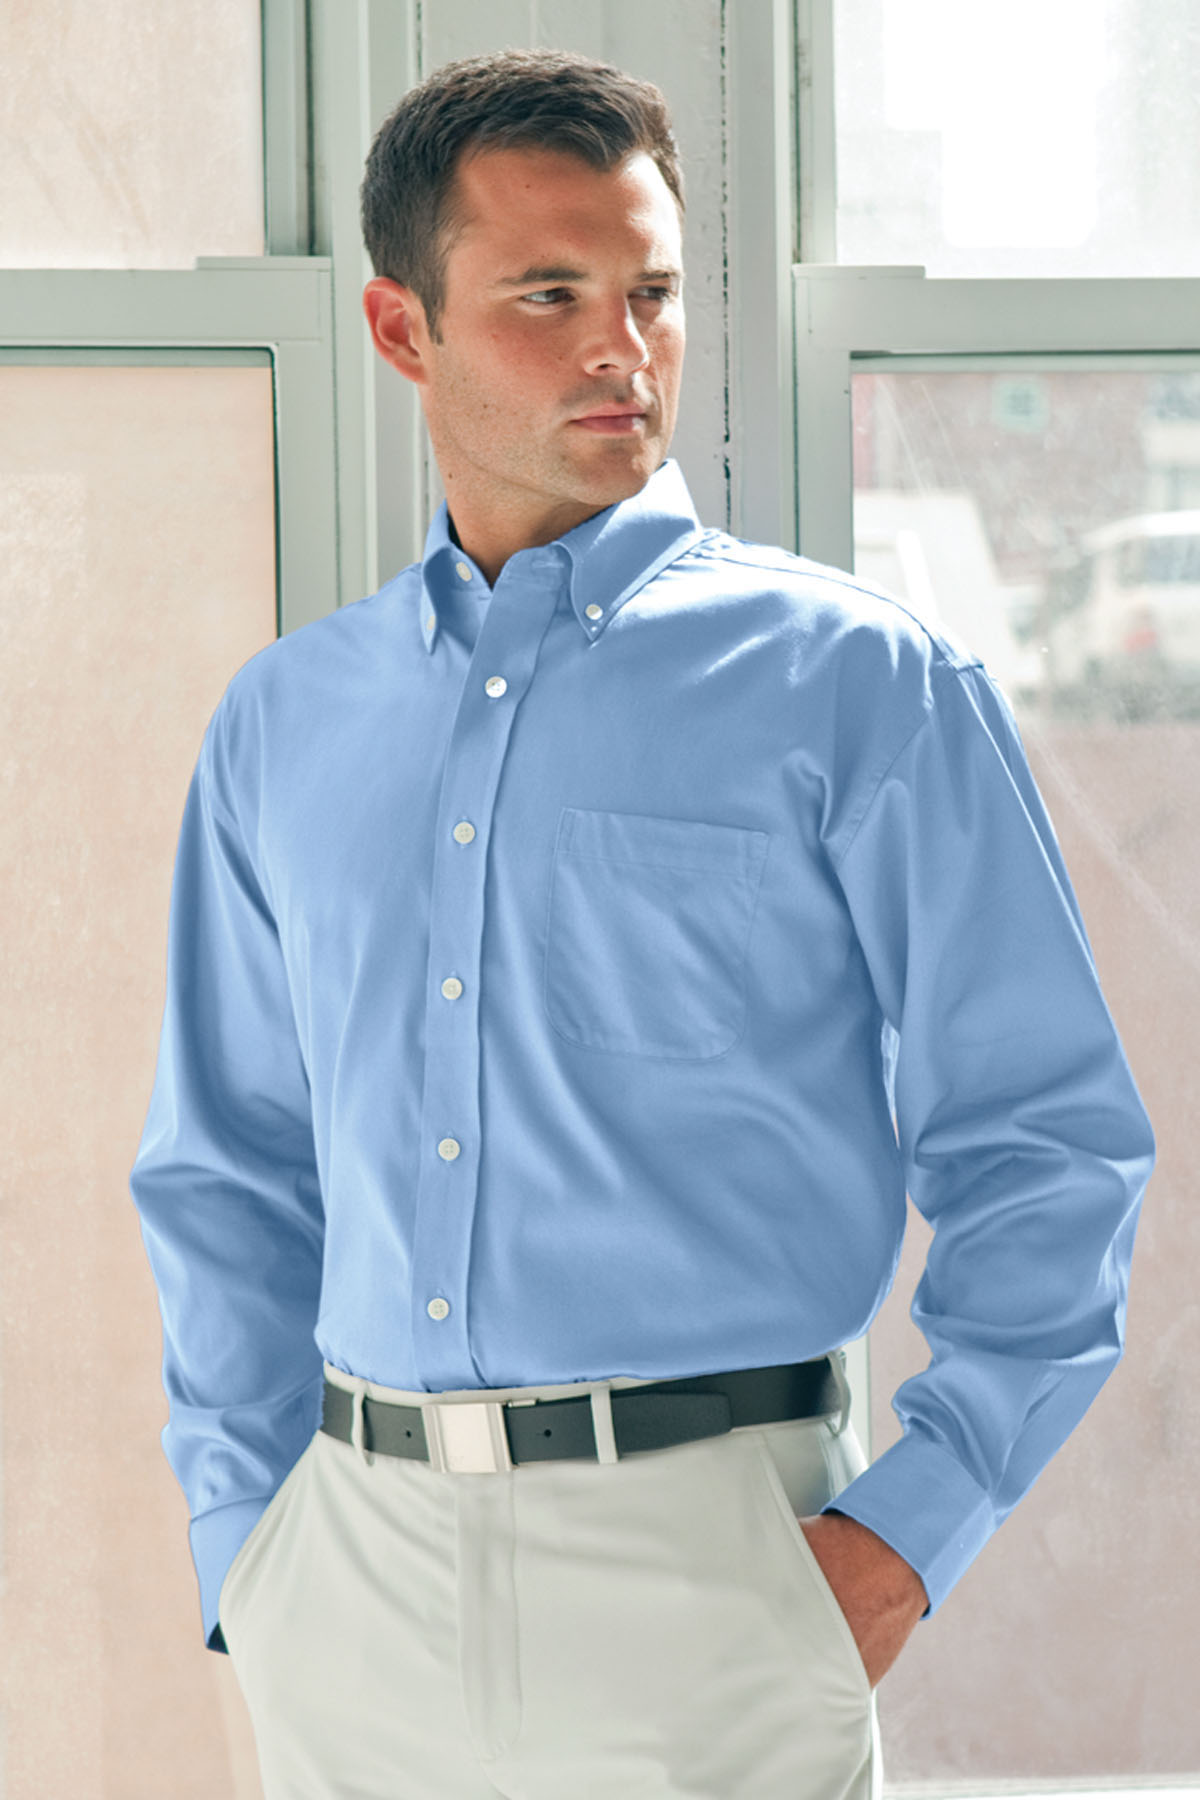 Vantage 1240 - Easy-Care Three Quarter Sleeve Solid Textured Shirt